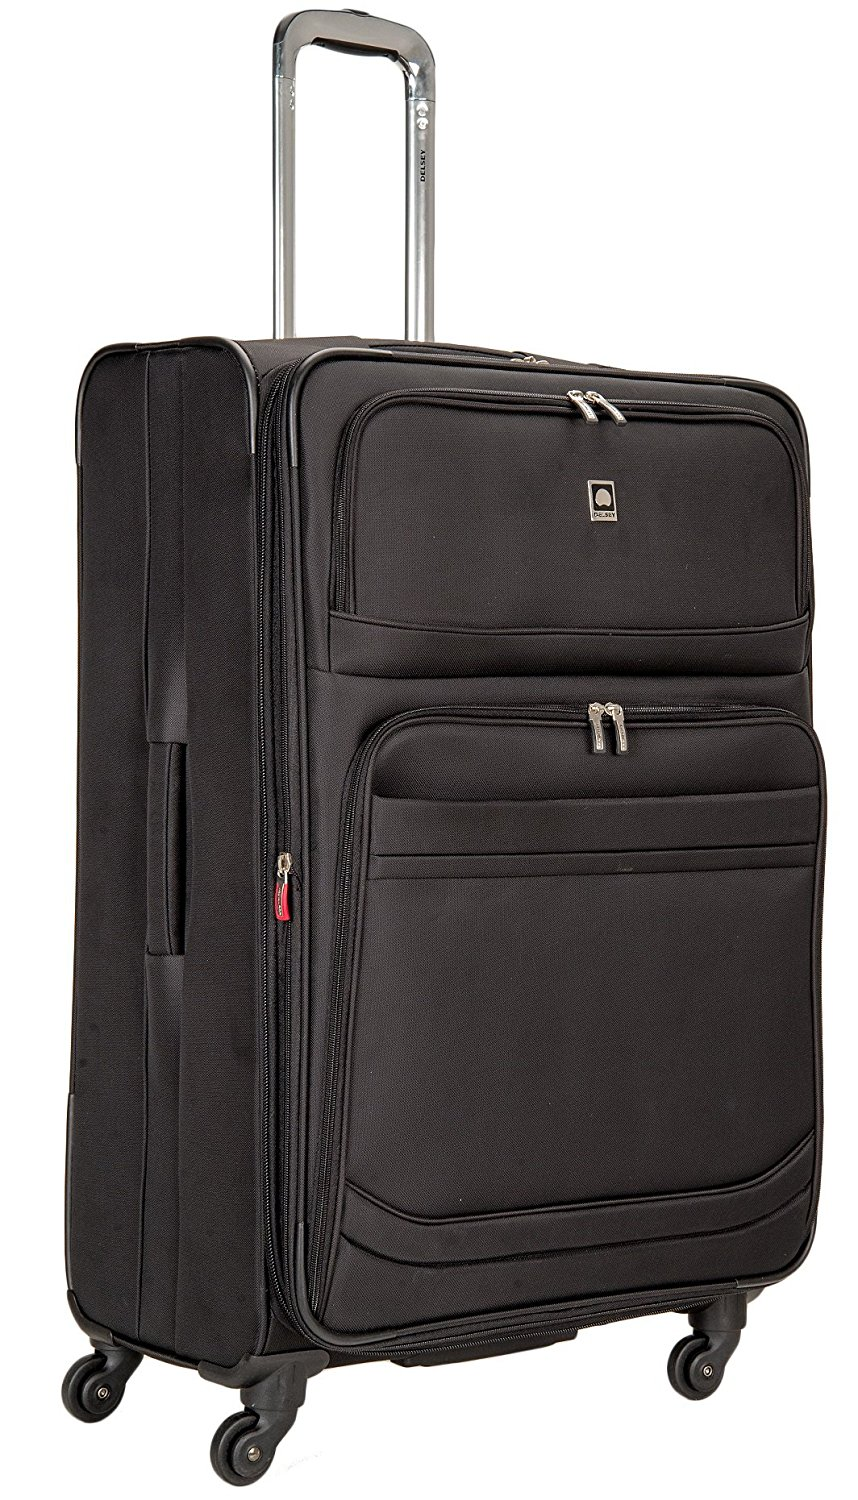 Delsey Luggage D-Lite Softside 29-Inch Lightweight Expandable Spinner